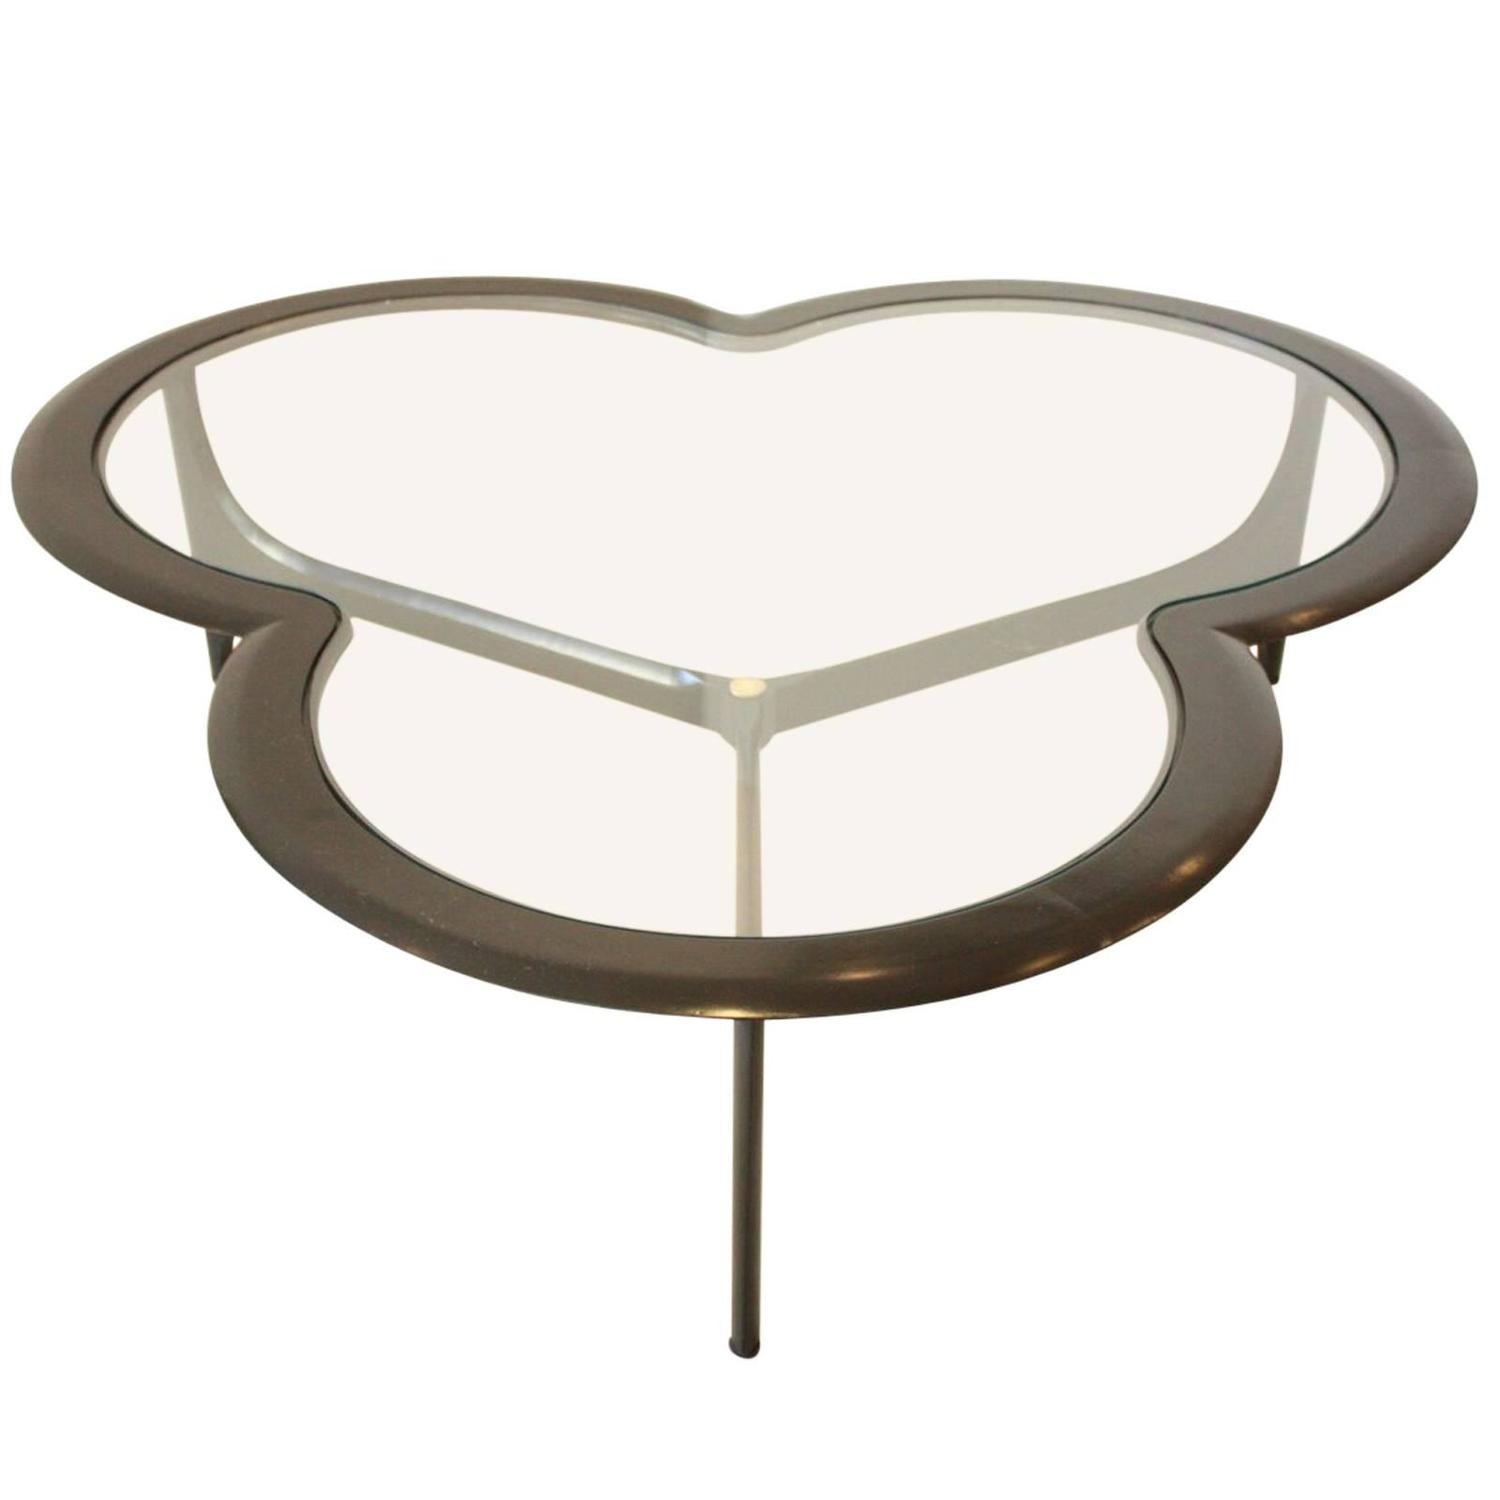 Park Lane Coffee Table: Mid-Century Clover Coffee Table By Lane At 1stdibs